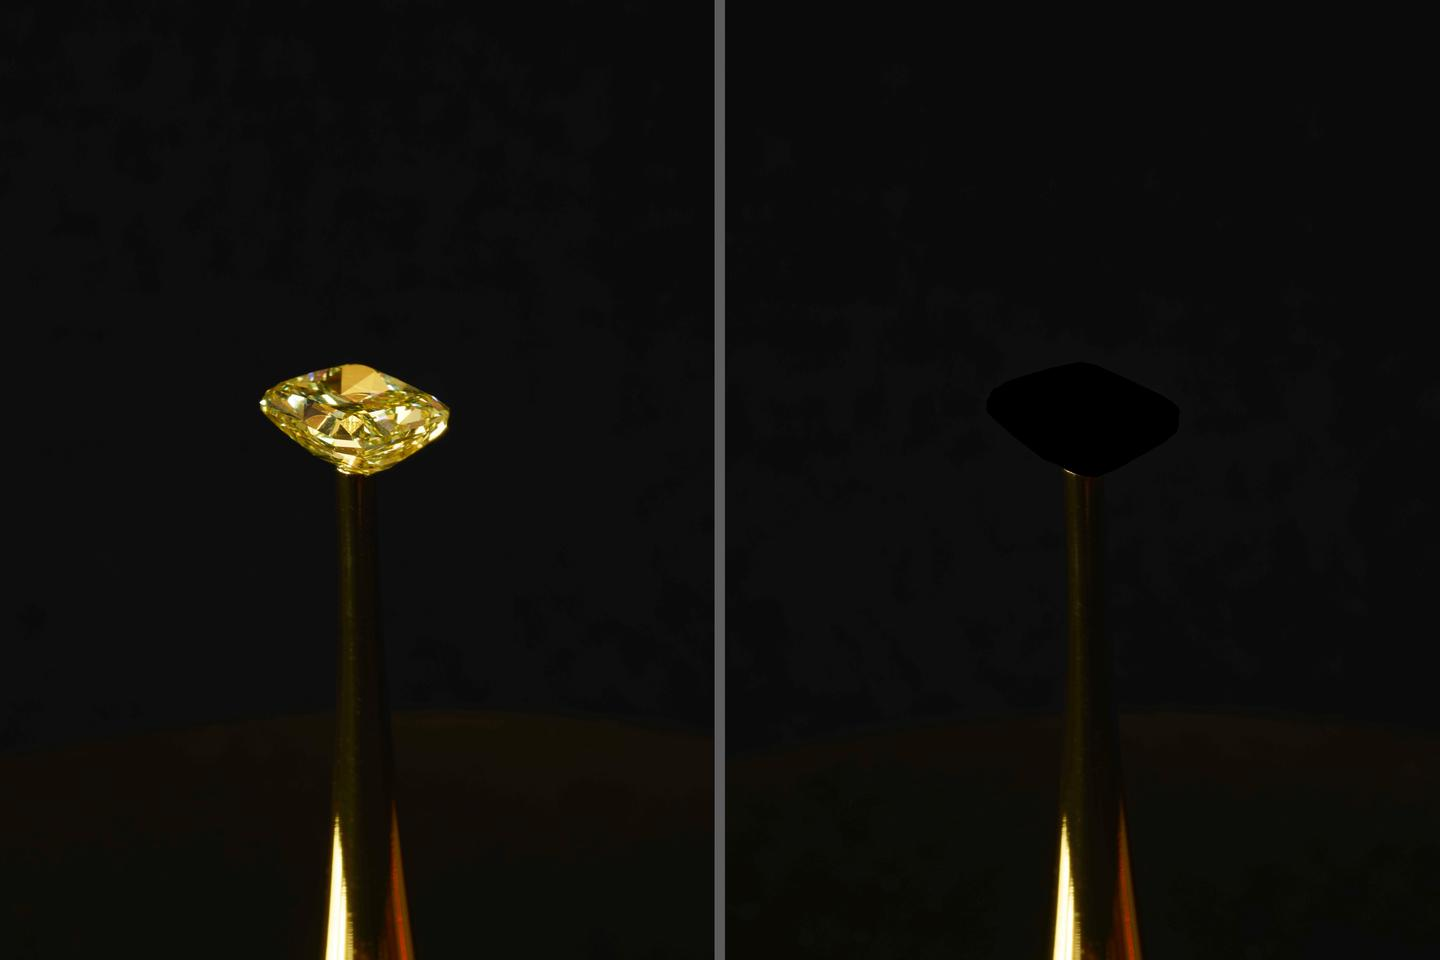 For now, the MIT team has demonstrated its ultra-black material as a coating for a a US$2-million diamond, replacing its many facets and intricate detail with a lifeless black void